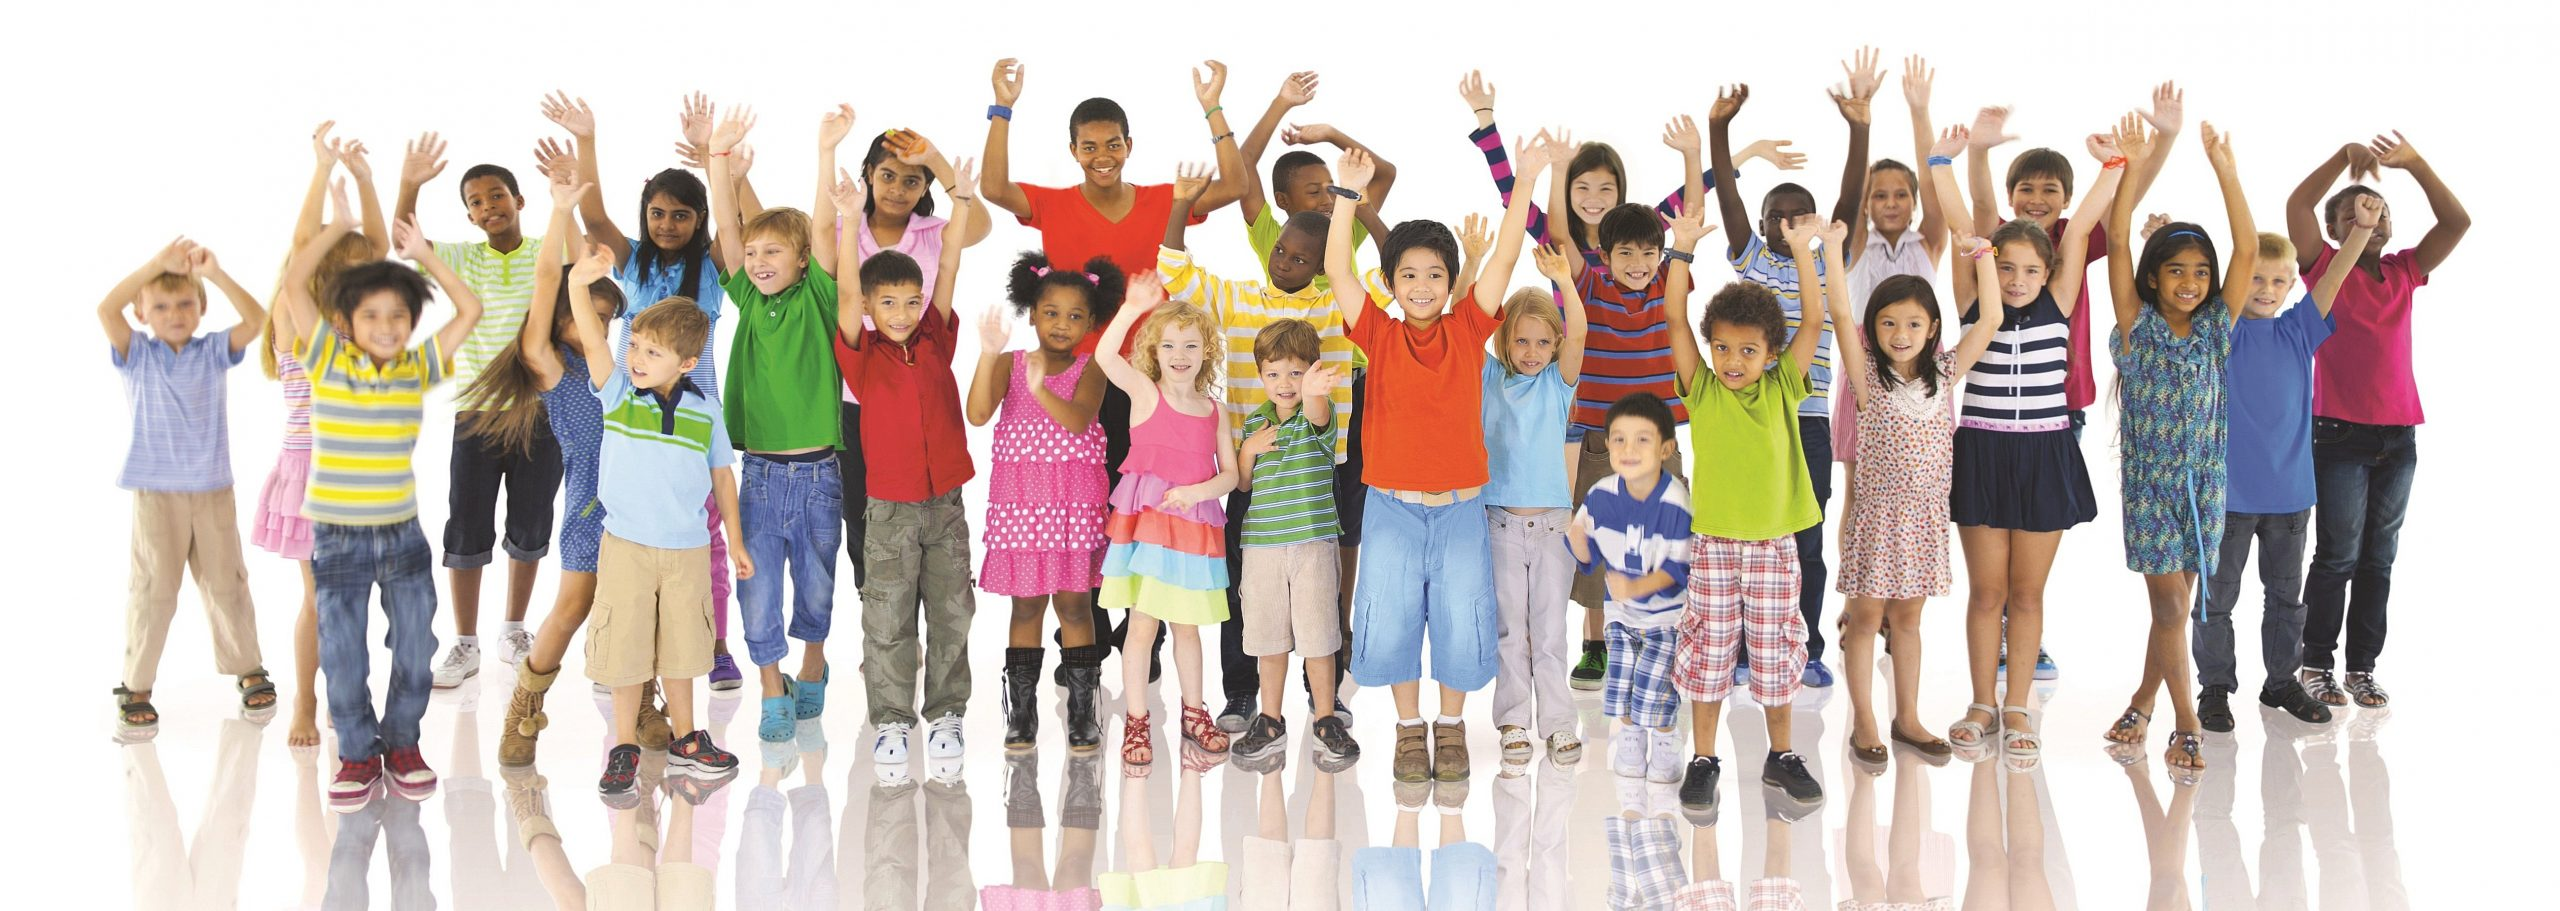 medical city kids picture